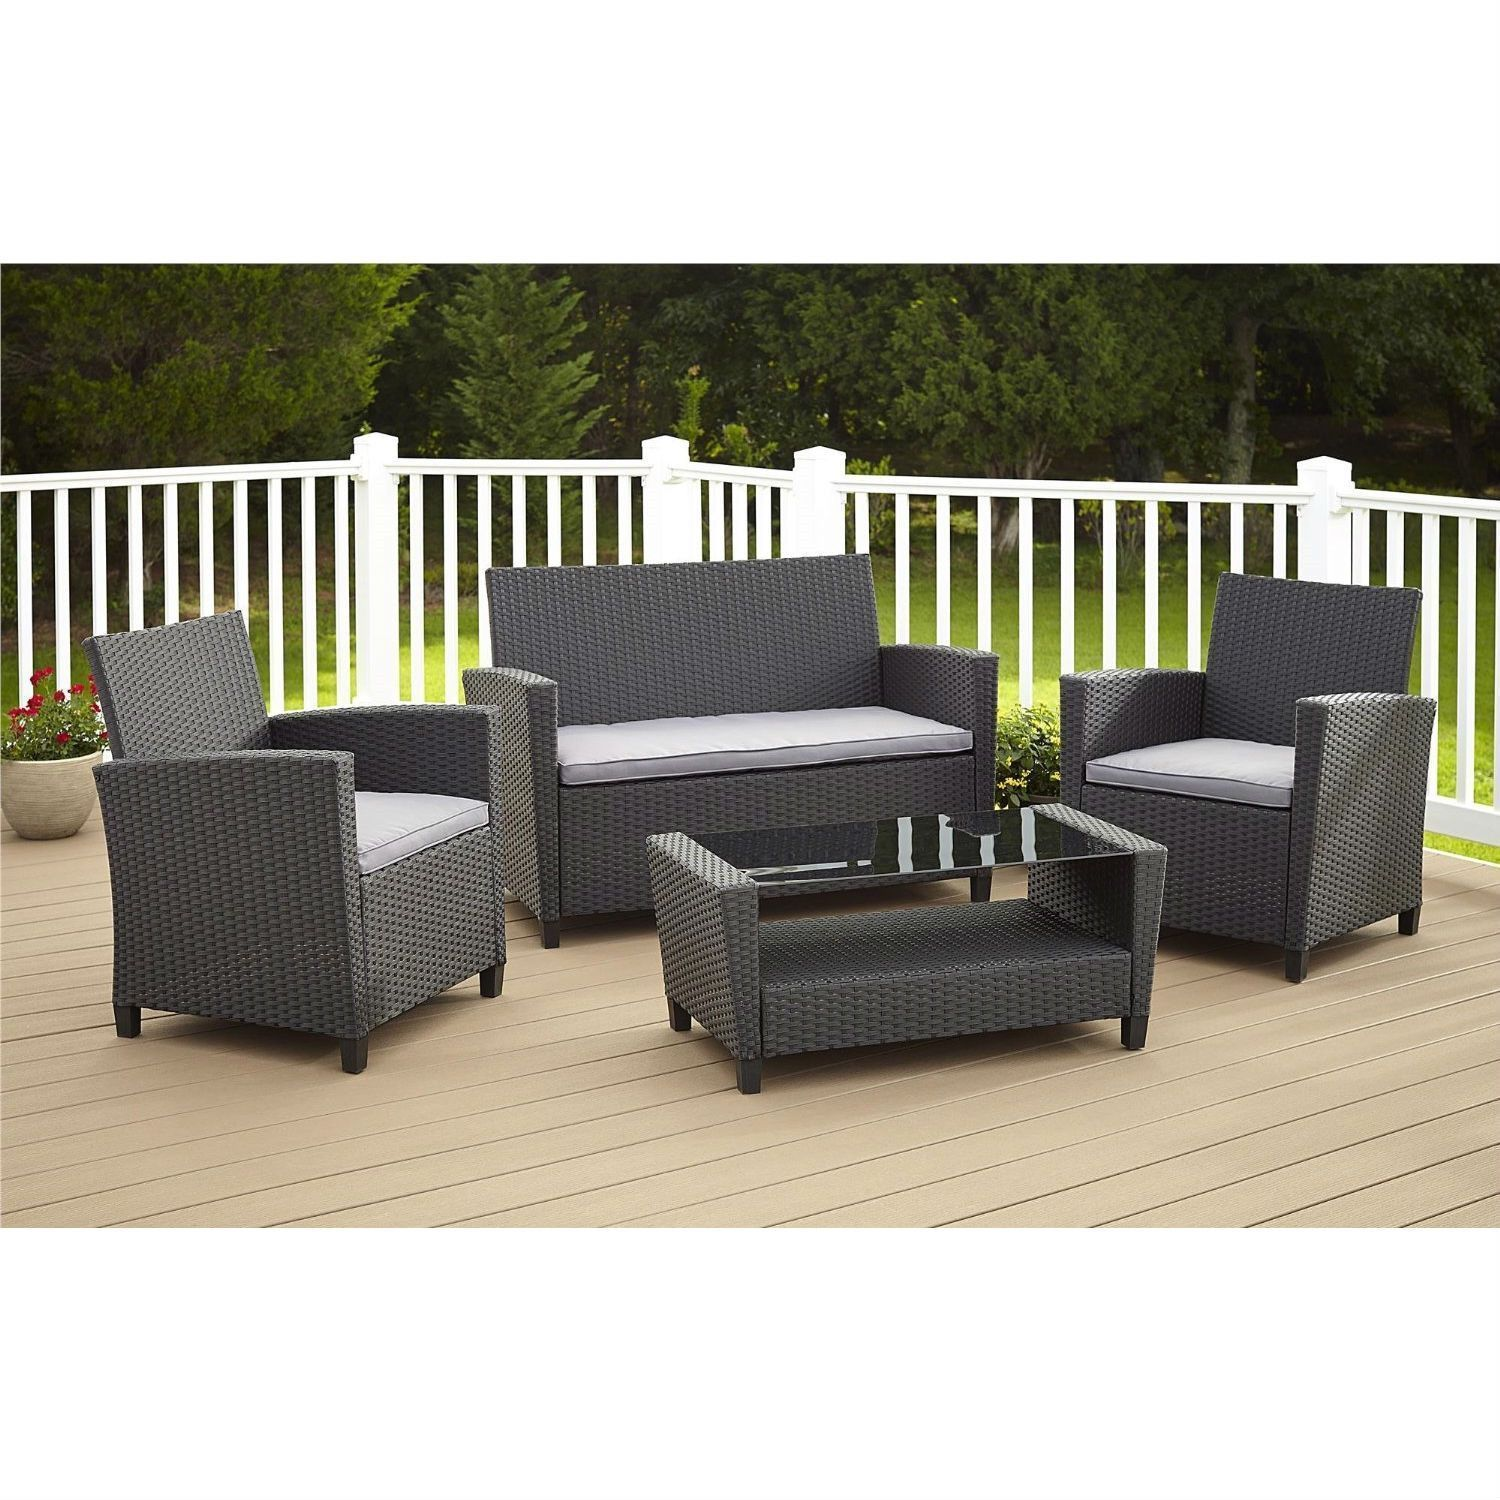 This 4 Piece Outdoor Patio Furniture Set In Grey Resin Wicker And